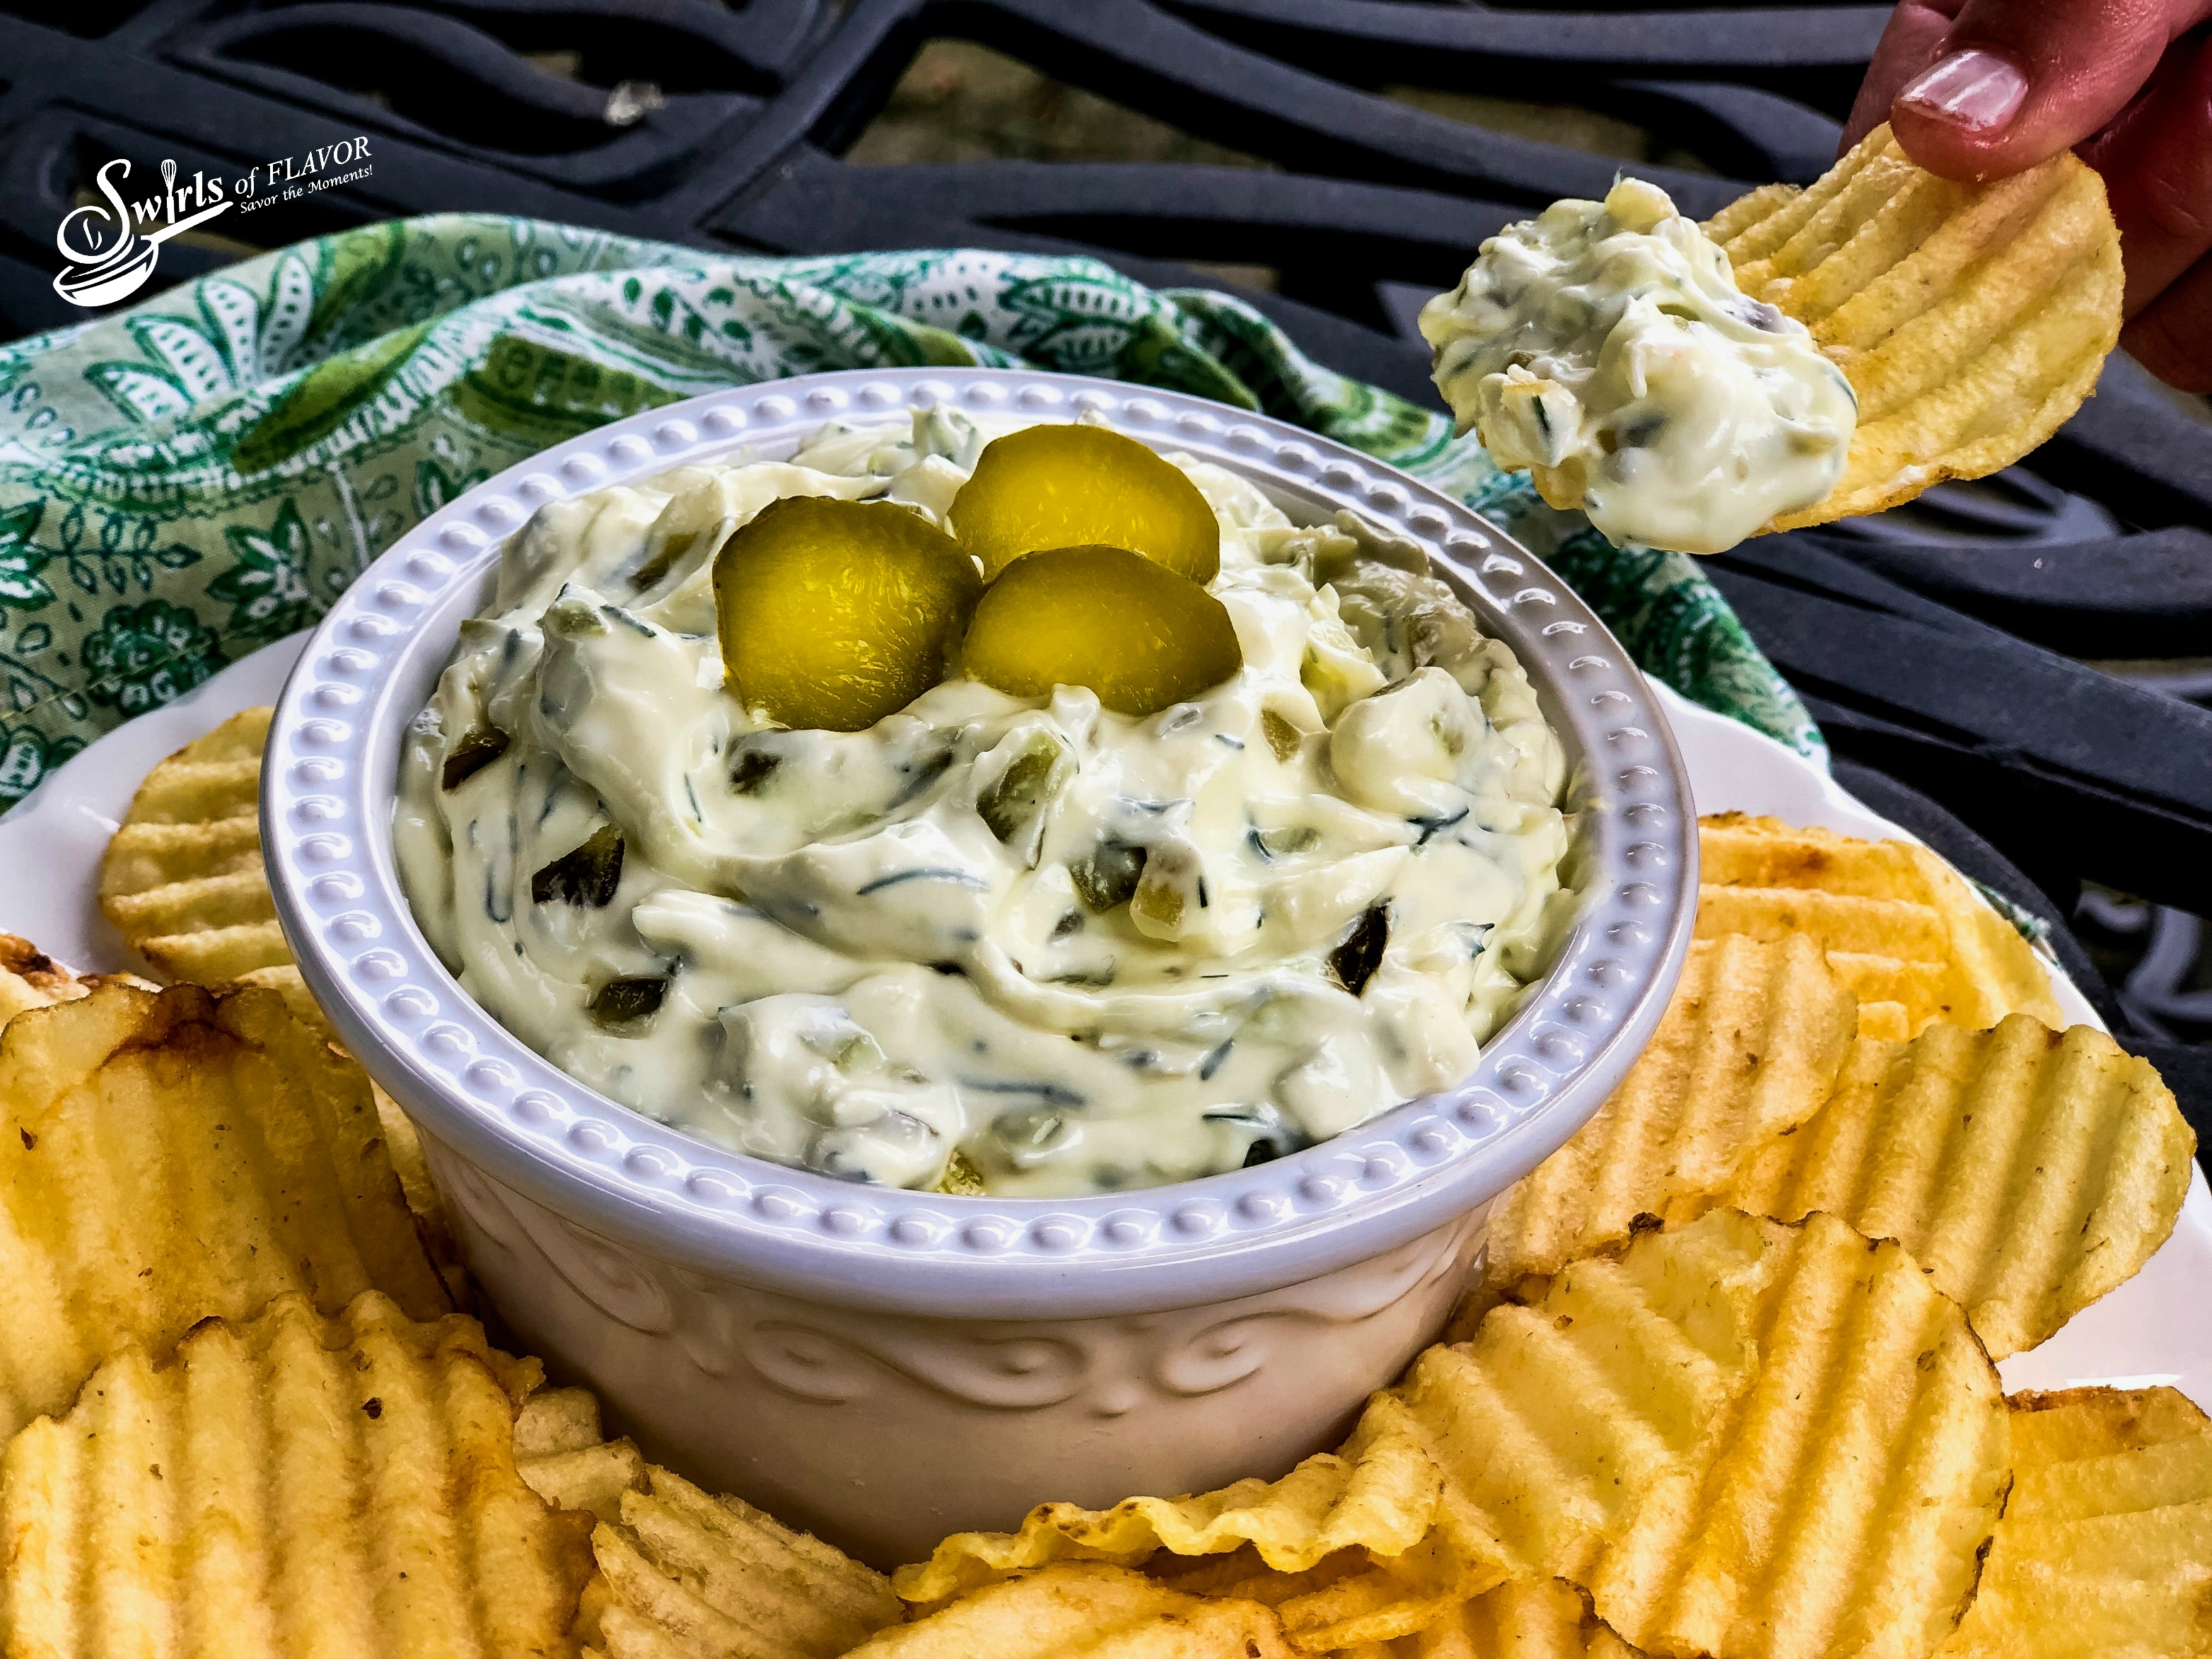 dill Pickle Dip with scoop on chip